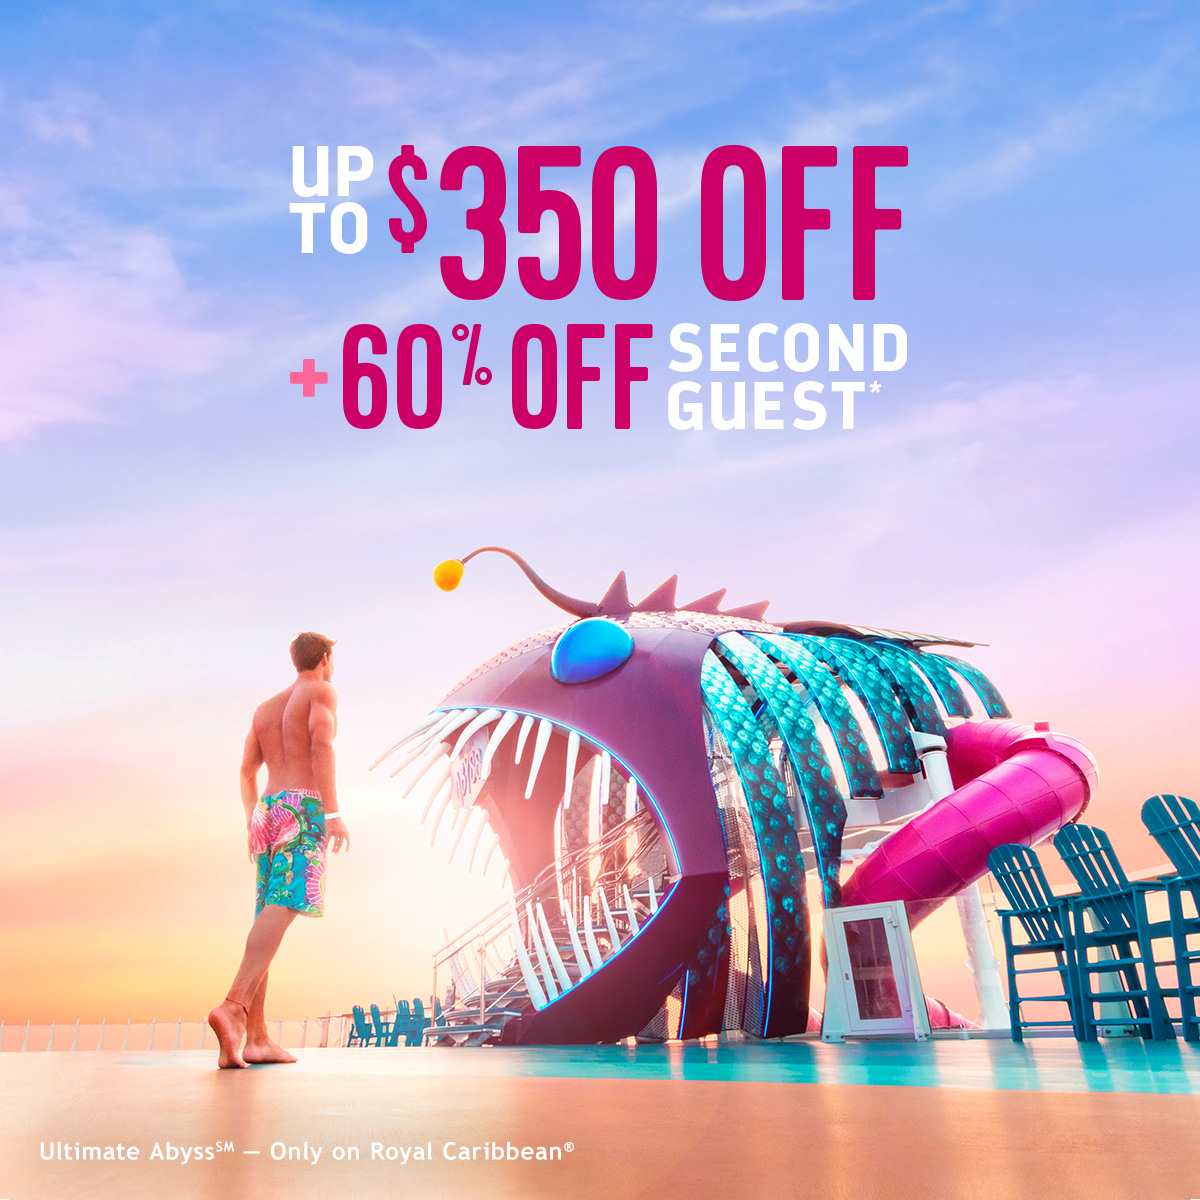 UP TO $350 OFF